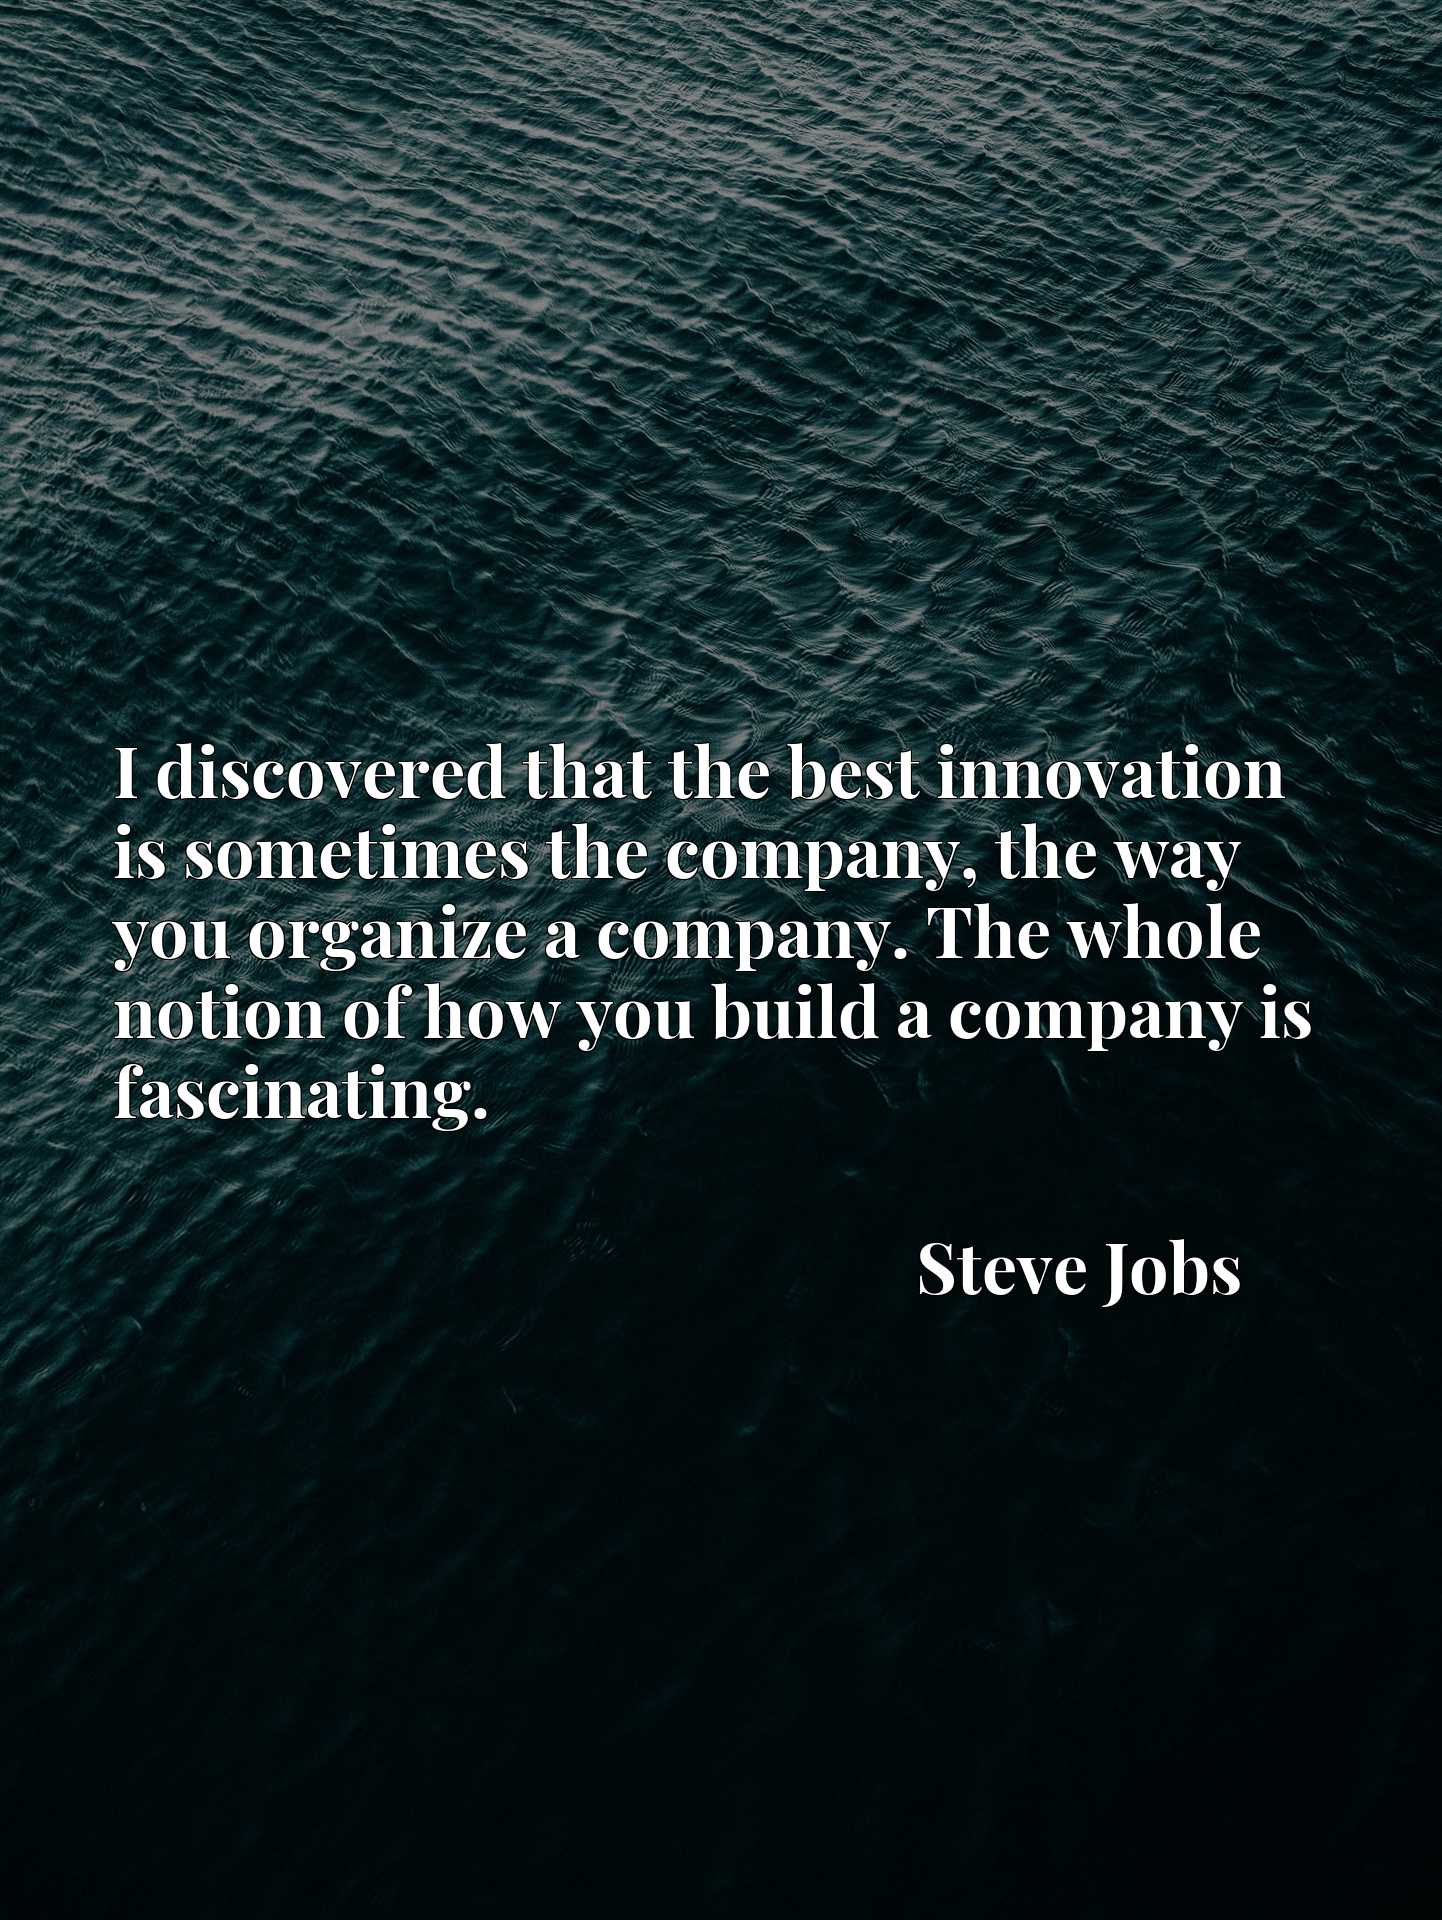 I discovered that the best innovation is sometimes the company, the way you organize a company. The whole notion of how you build a company is fascinating.